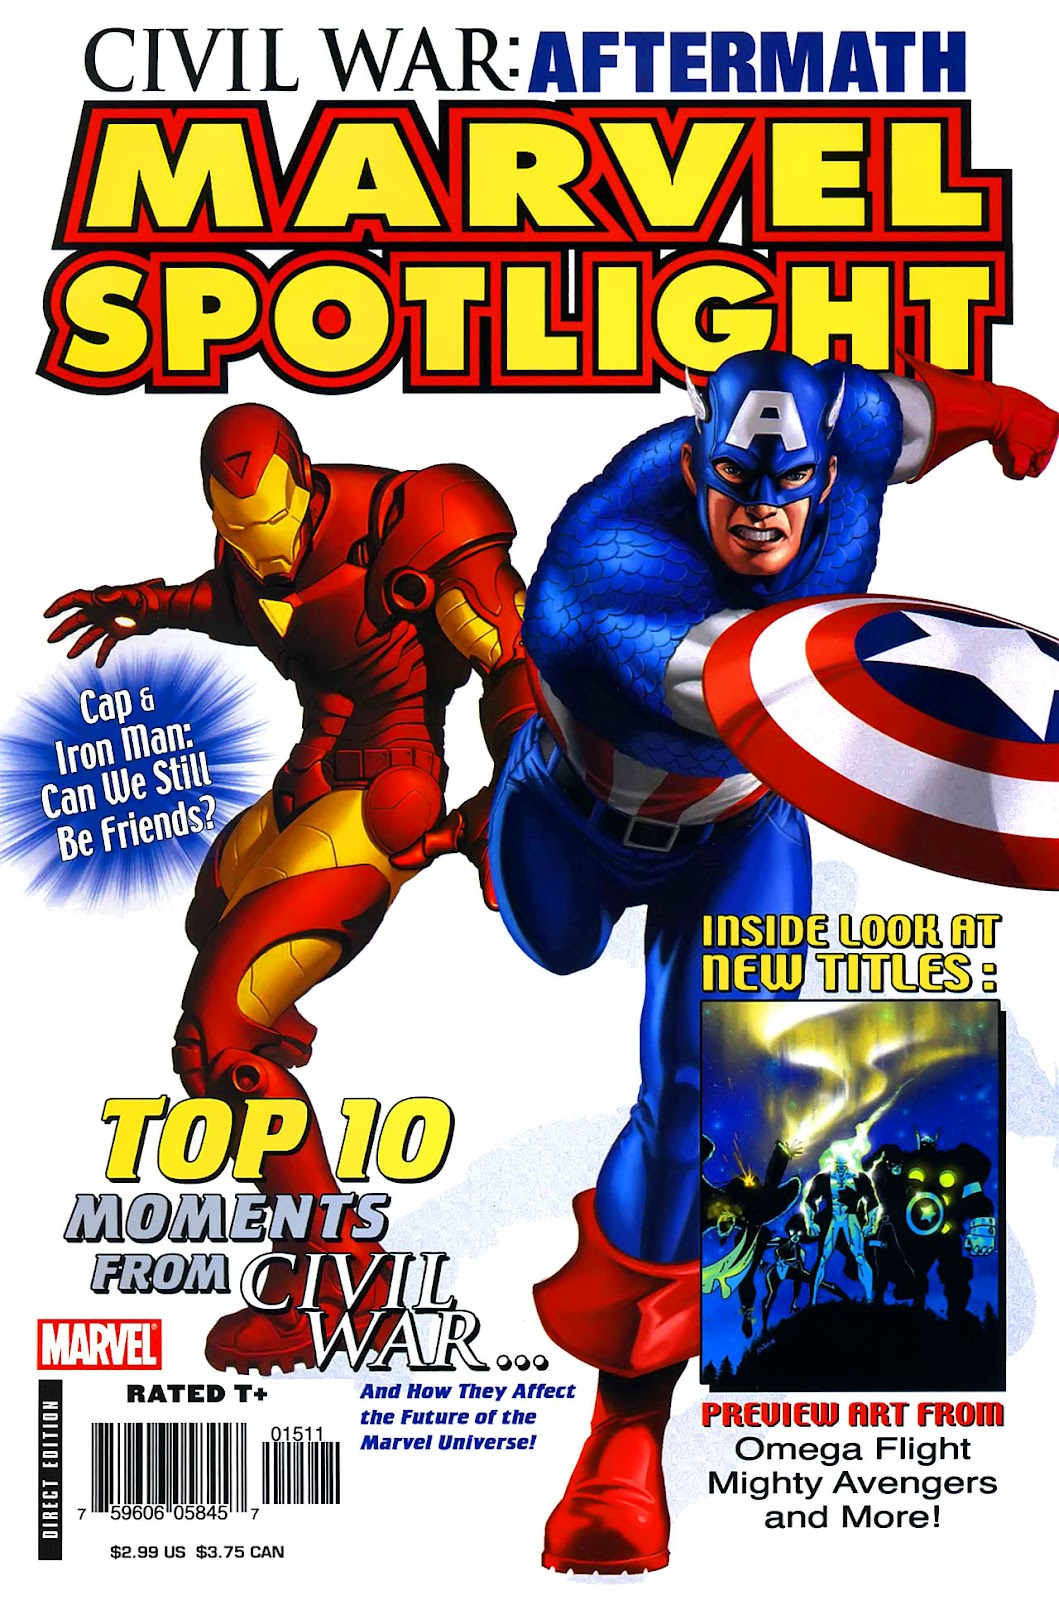 Read online Marvel Spotlight: Civil War Aftermath comic -  Issue # Full - 1